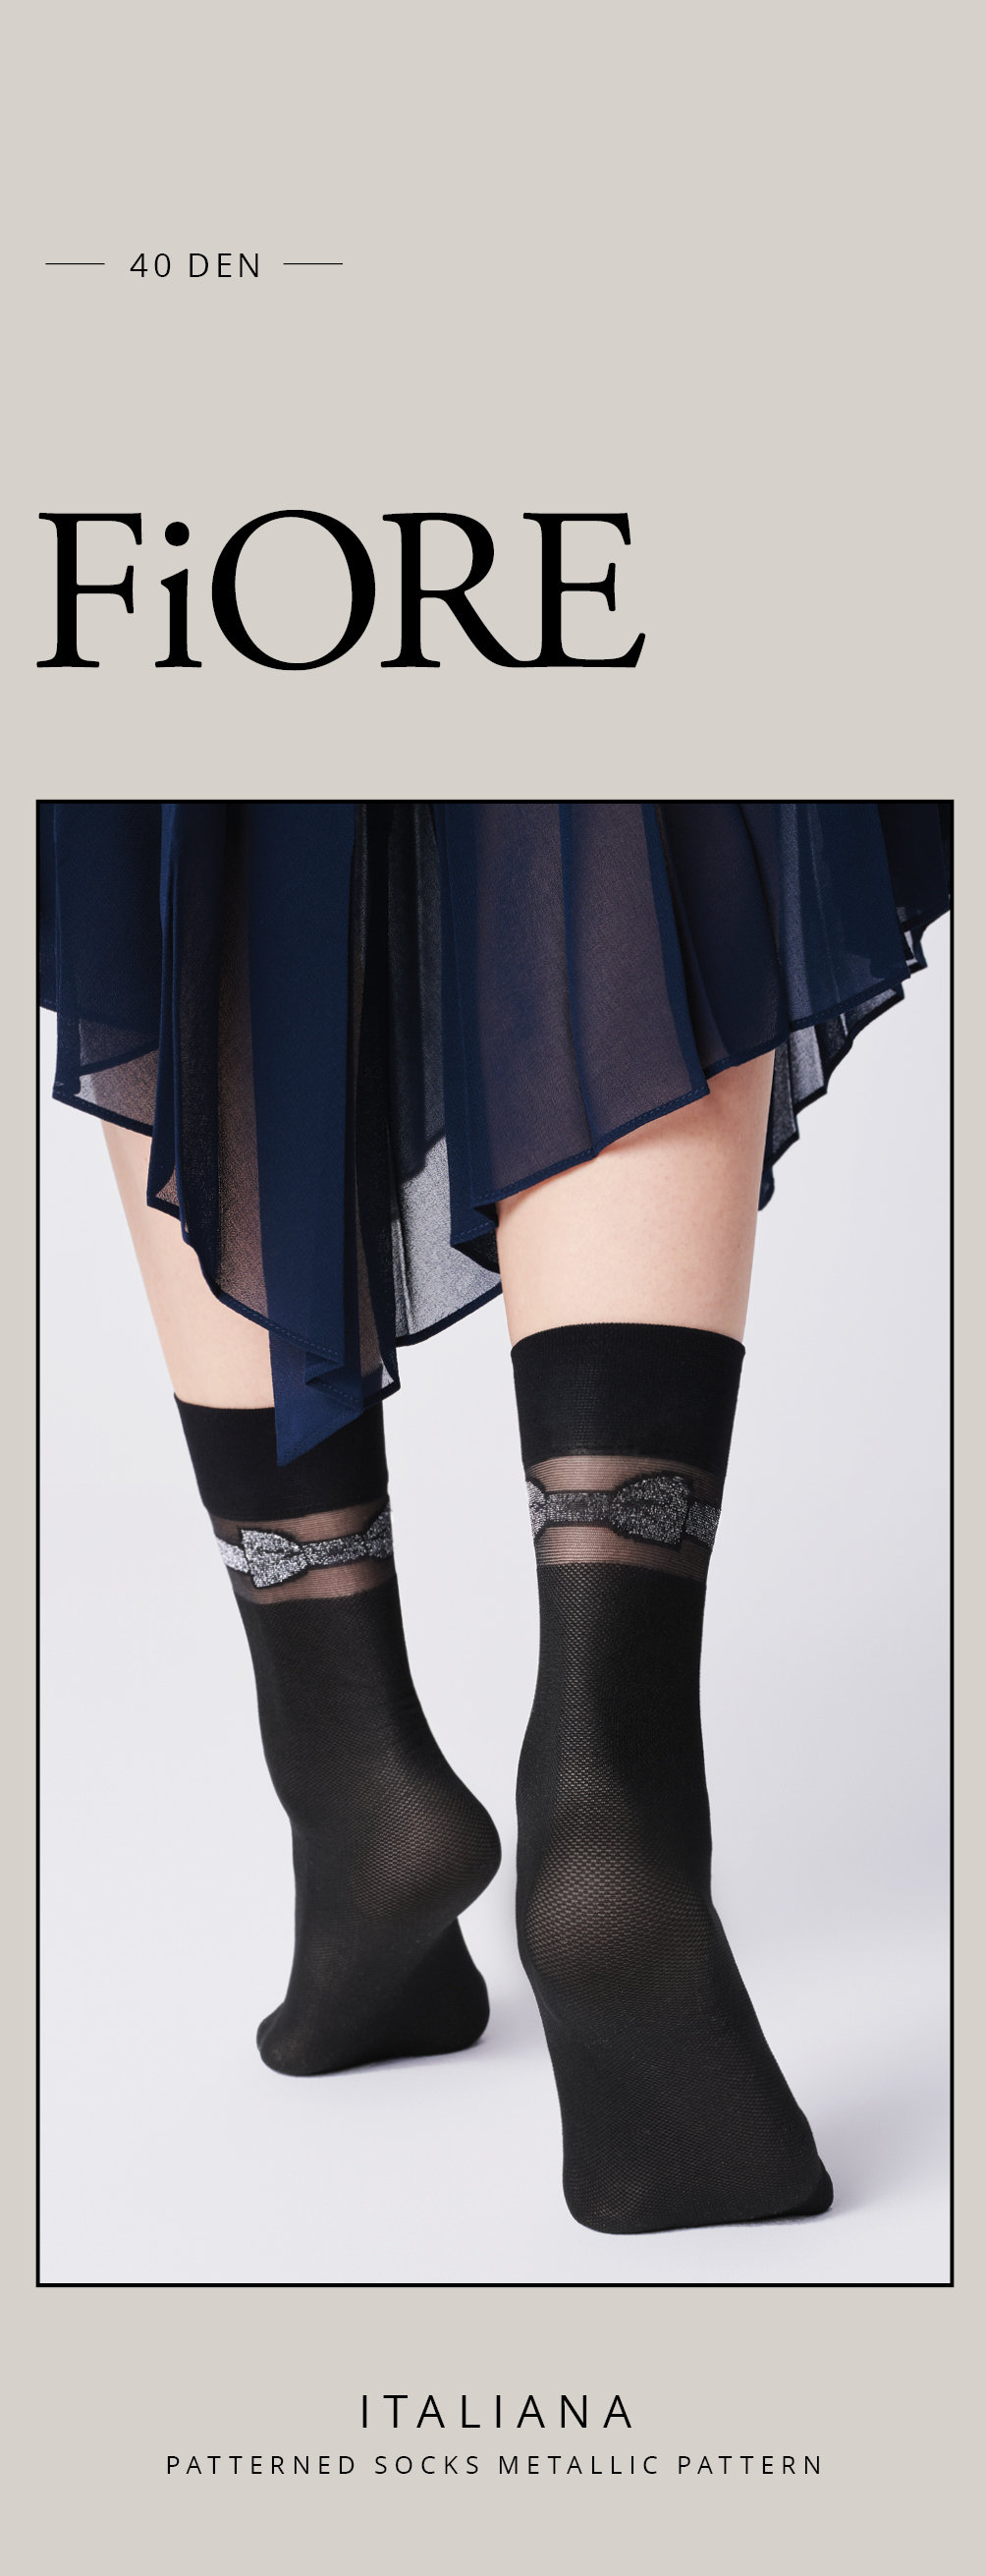 Fiore: Beauty Bow Patterned Socks